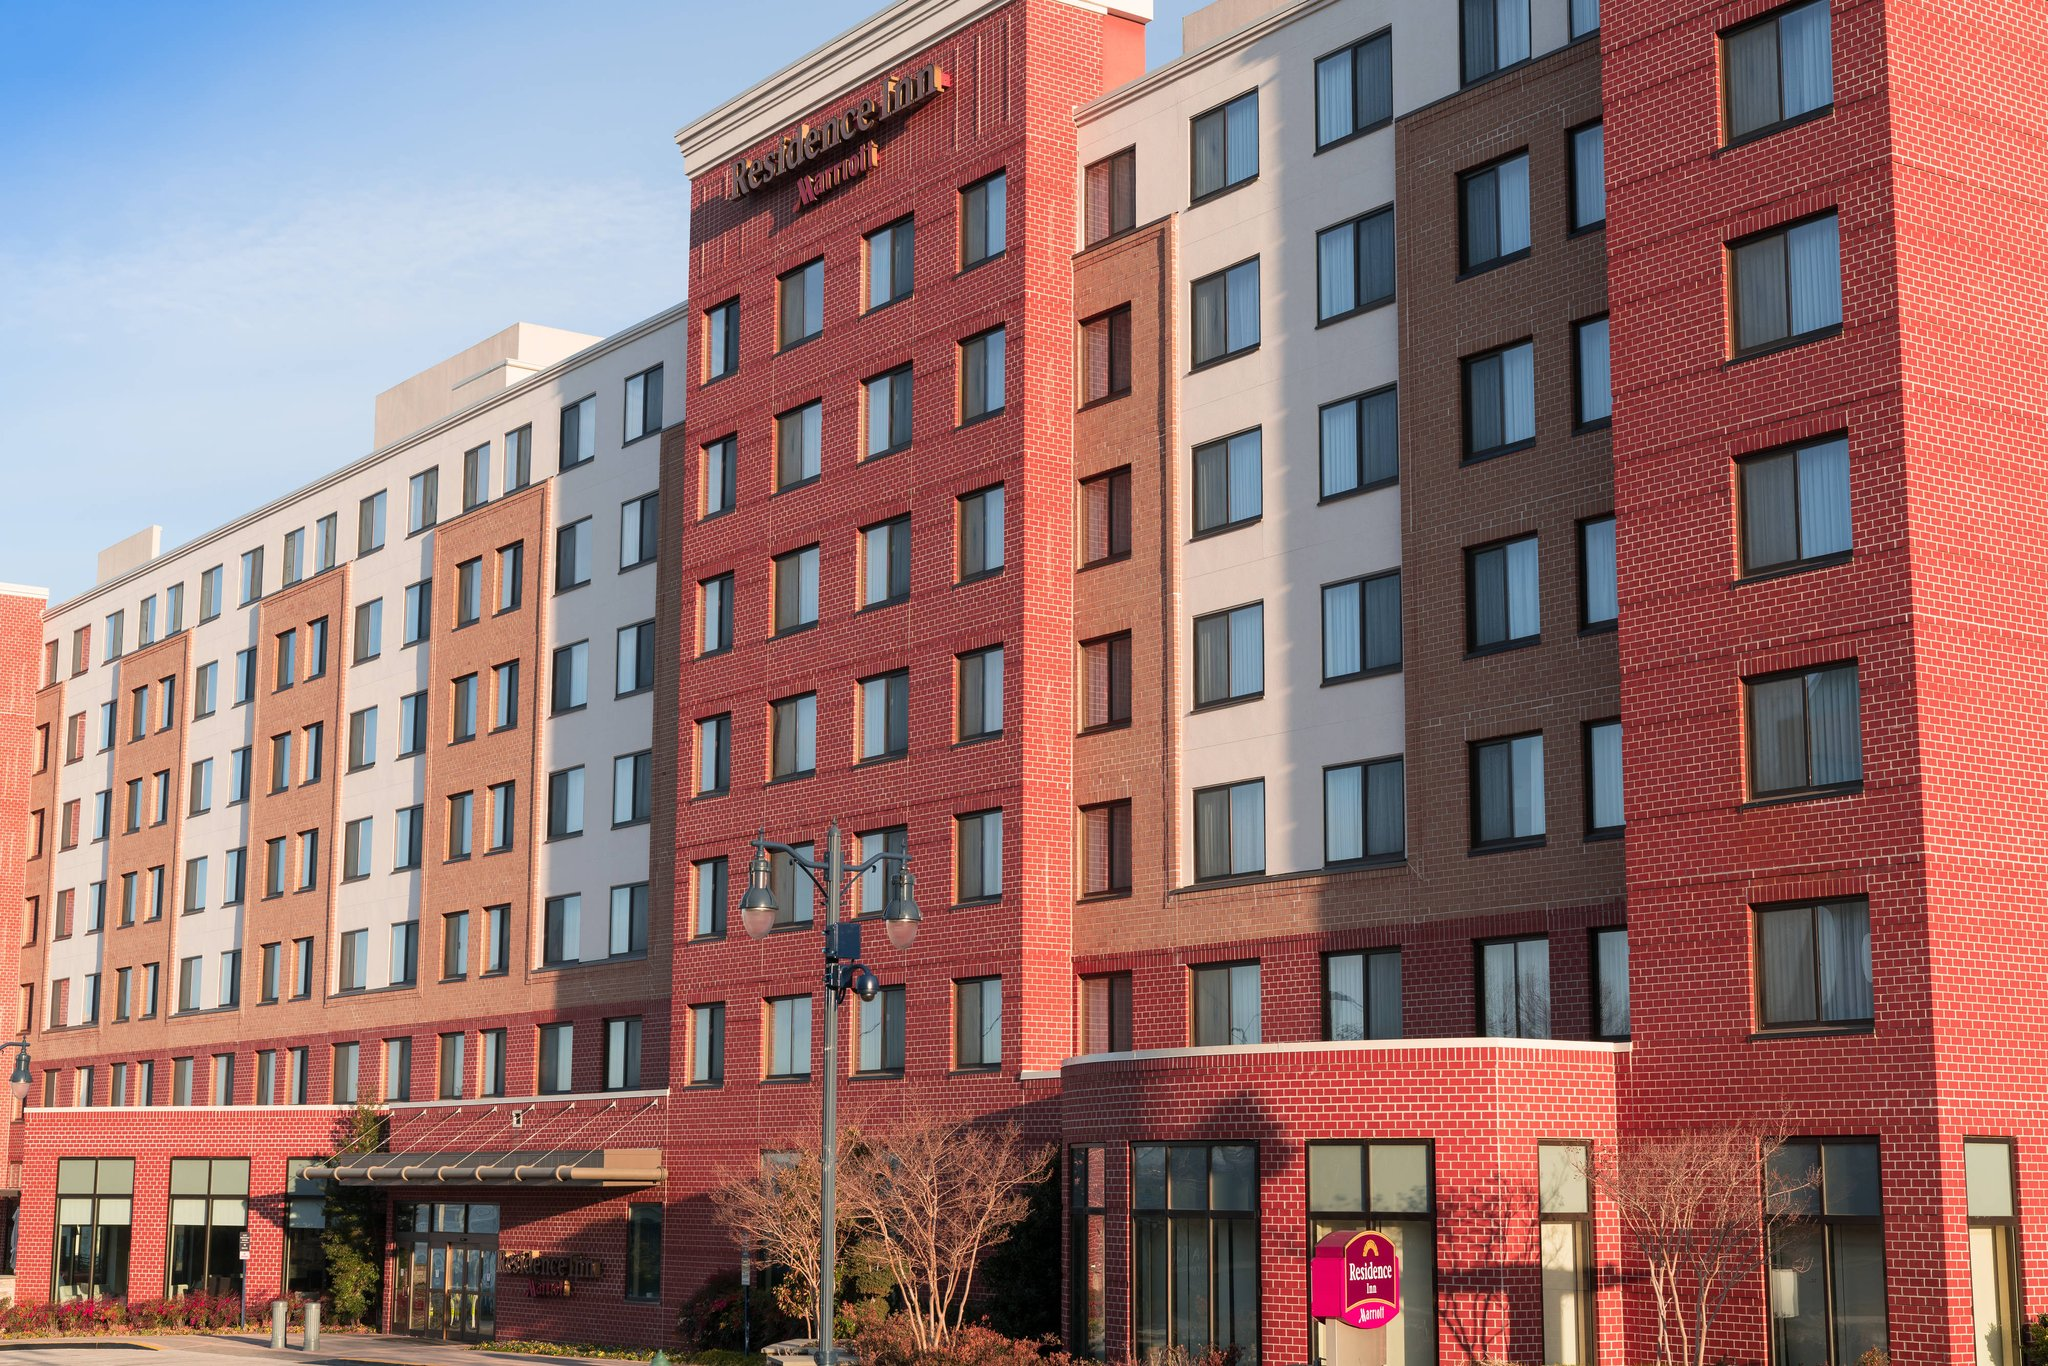 Residence Inn National Harbor